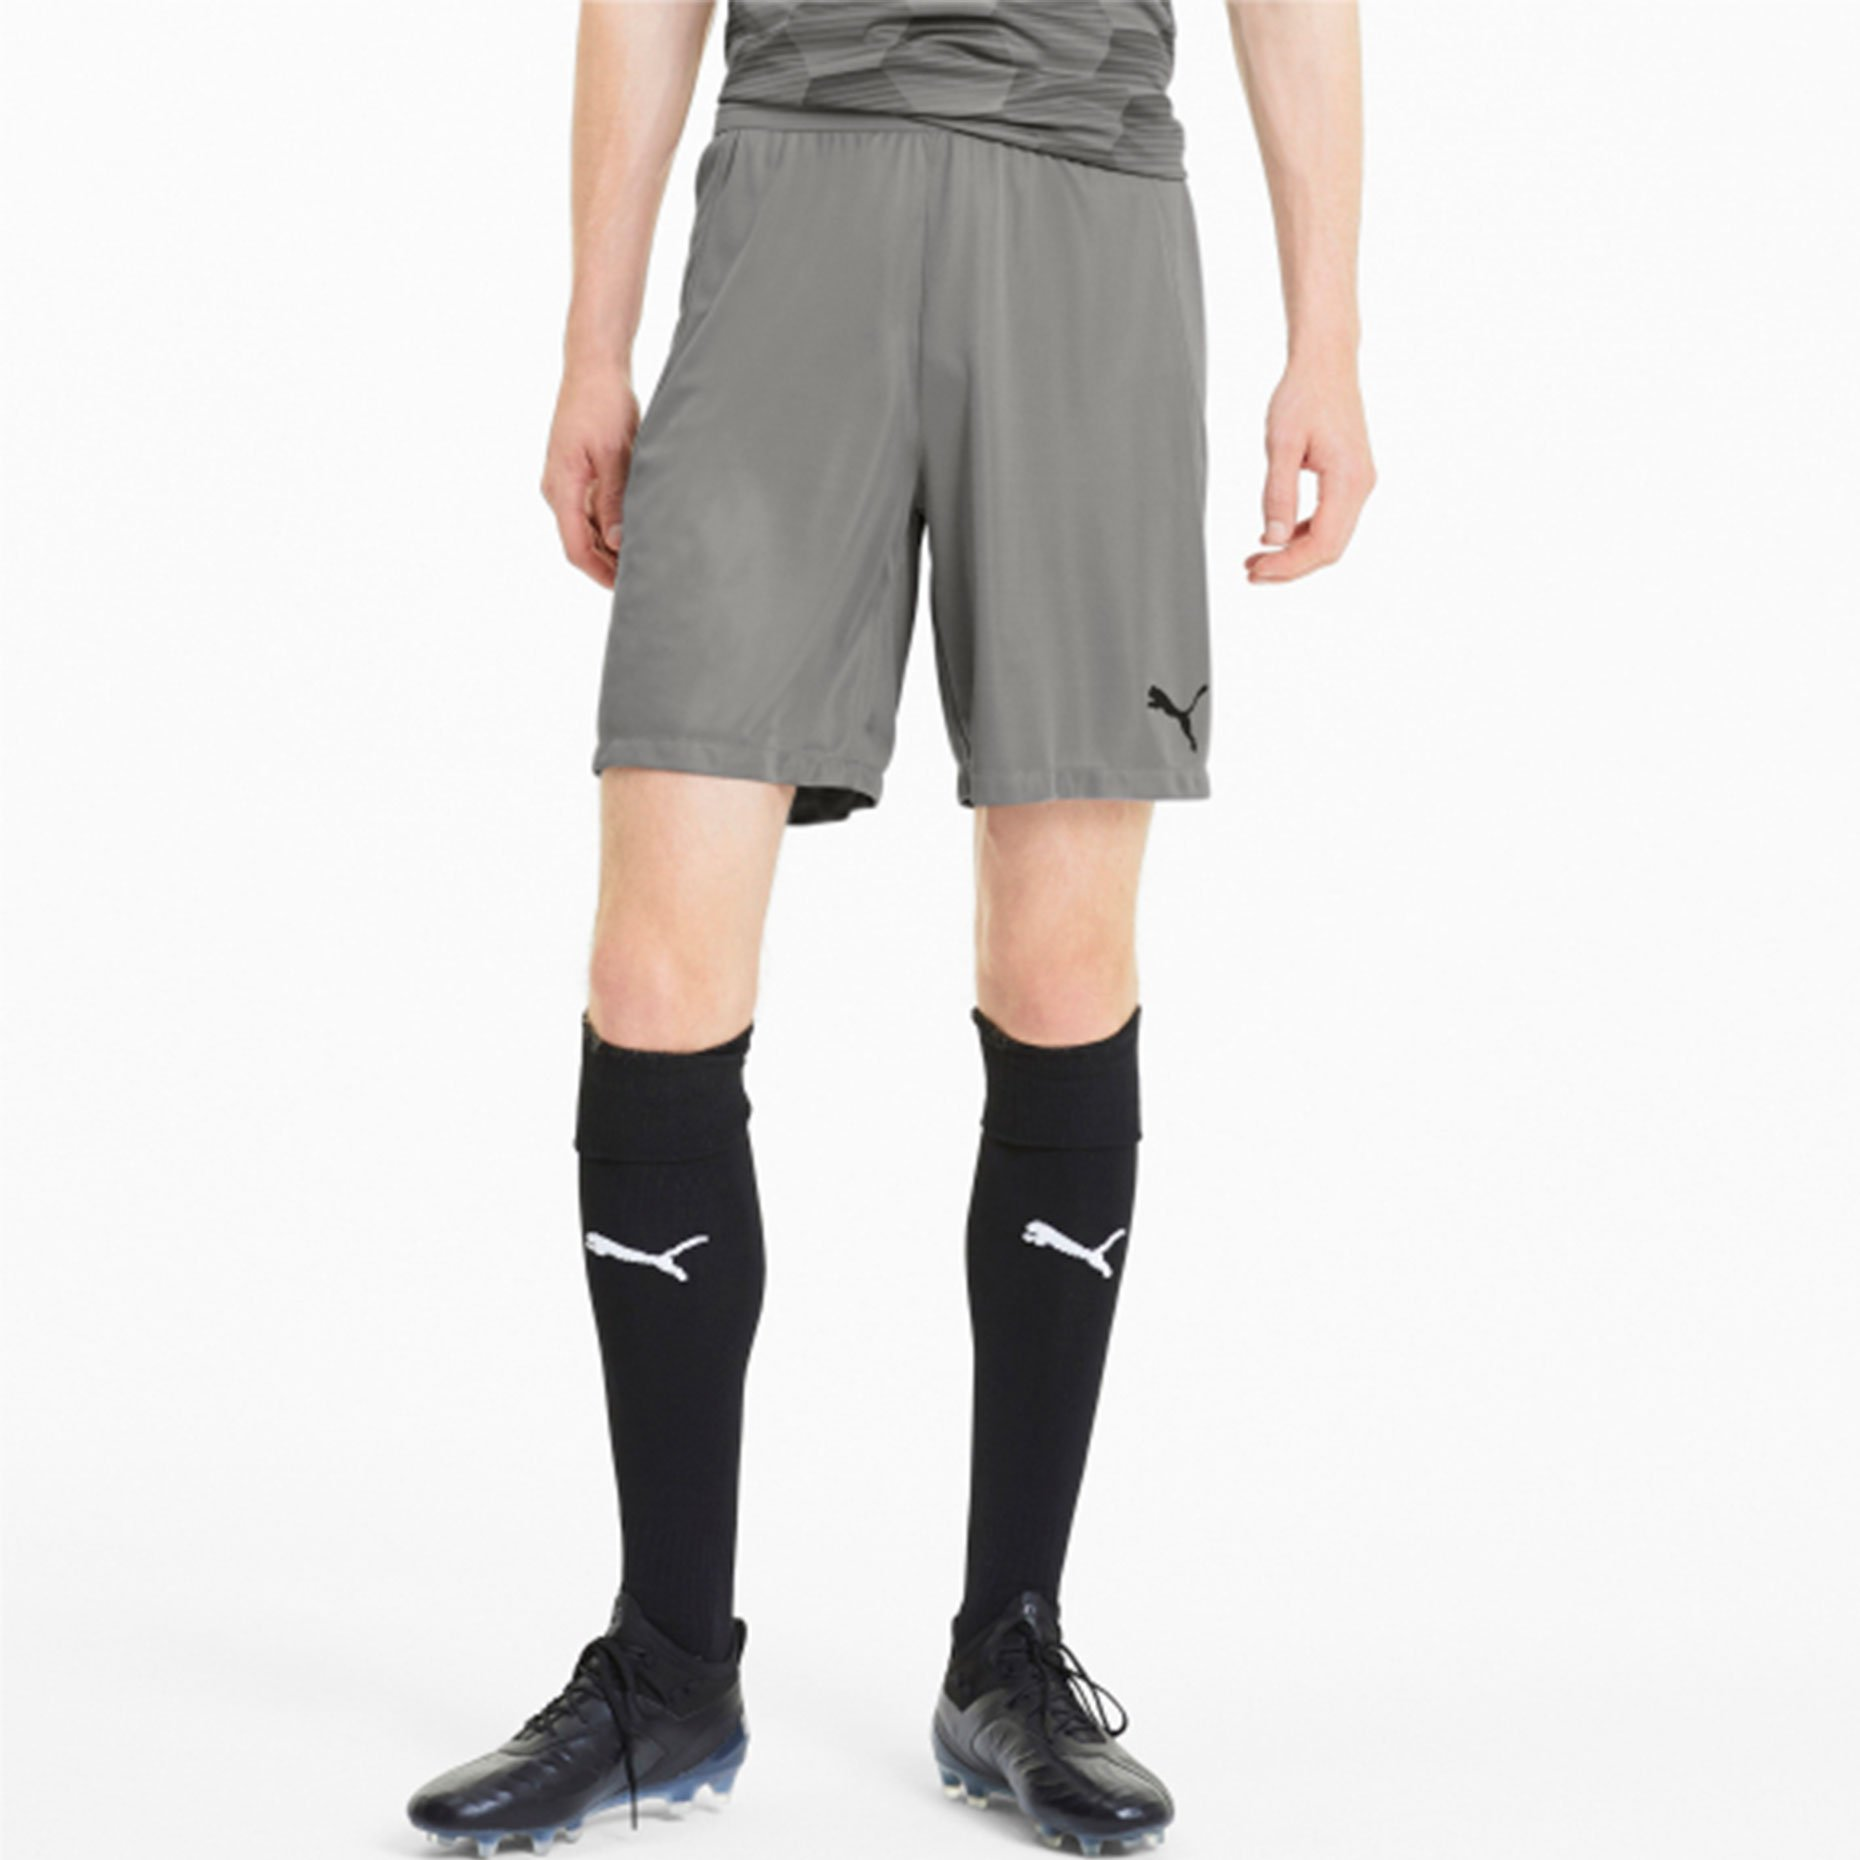 Шорты игровые Puma teamFINAL 21 knit Shorts